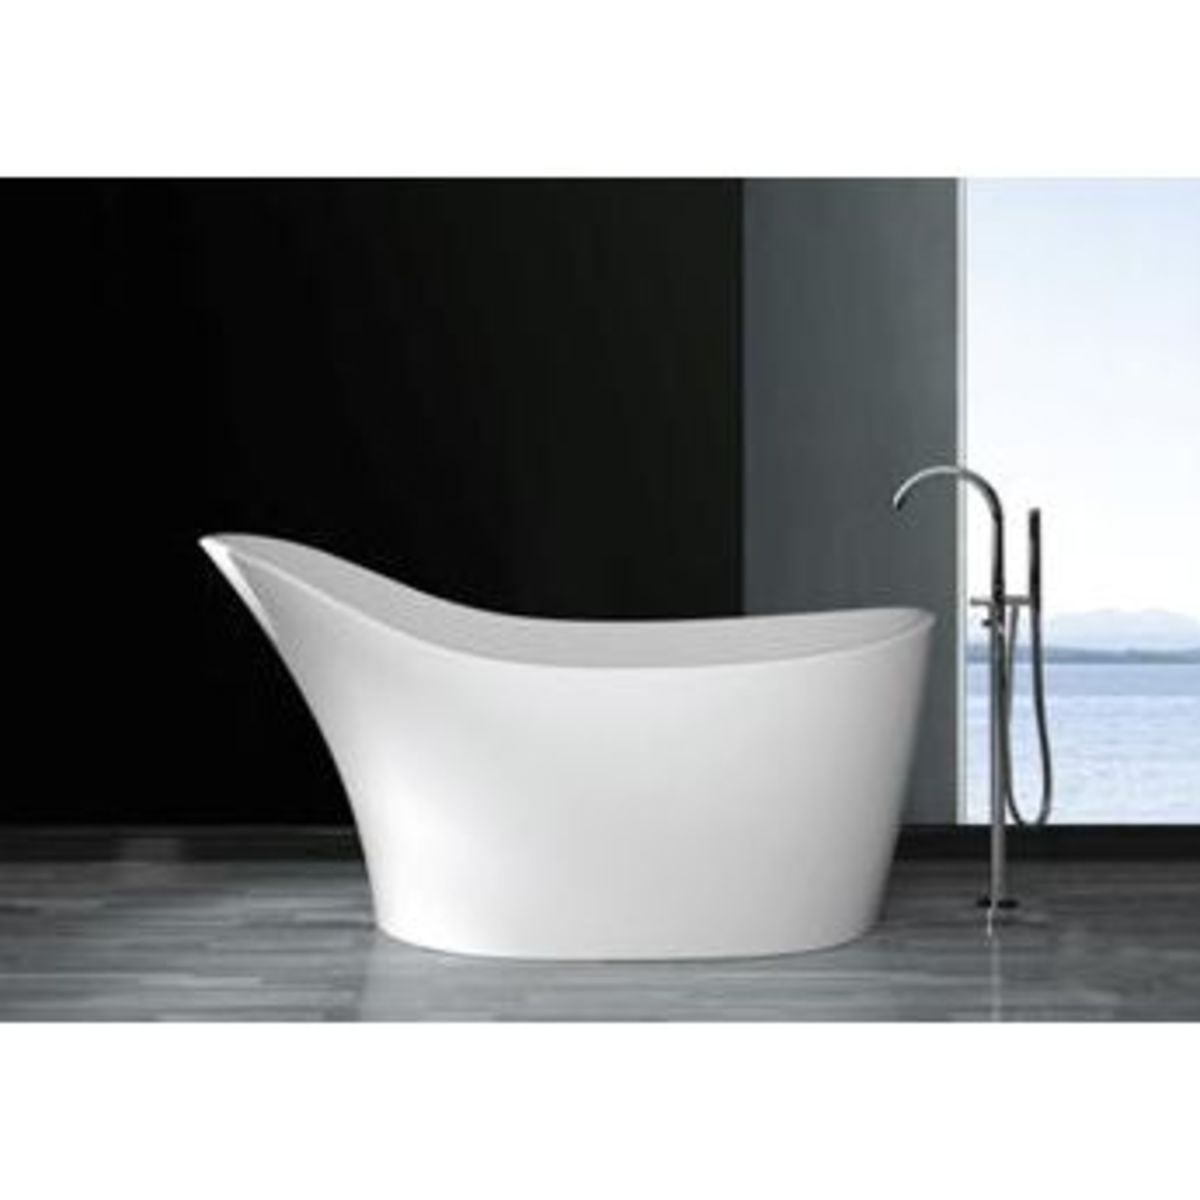 Olympian Pantheon Slipper Stone Bath by Boundary Bathrooms